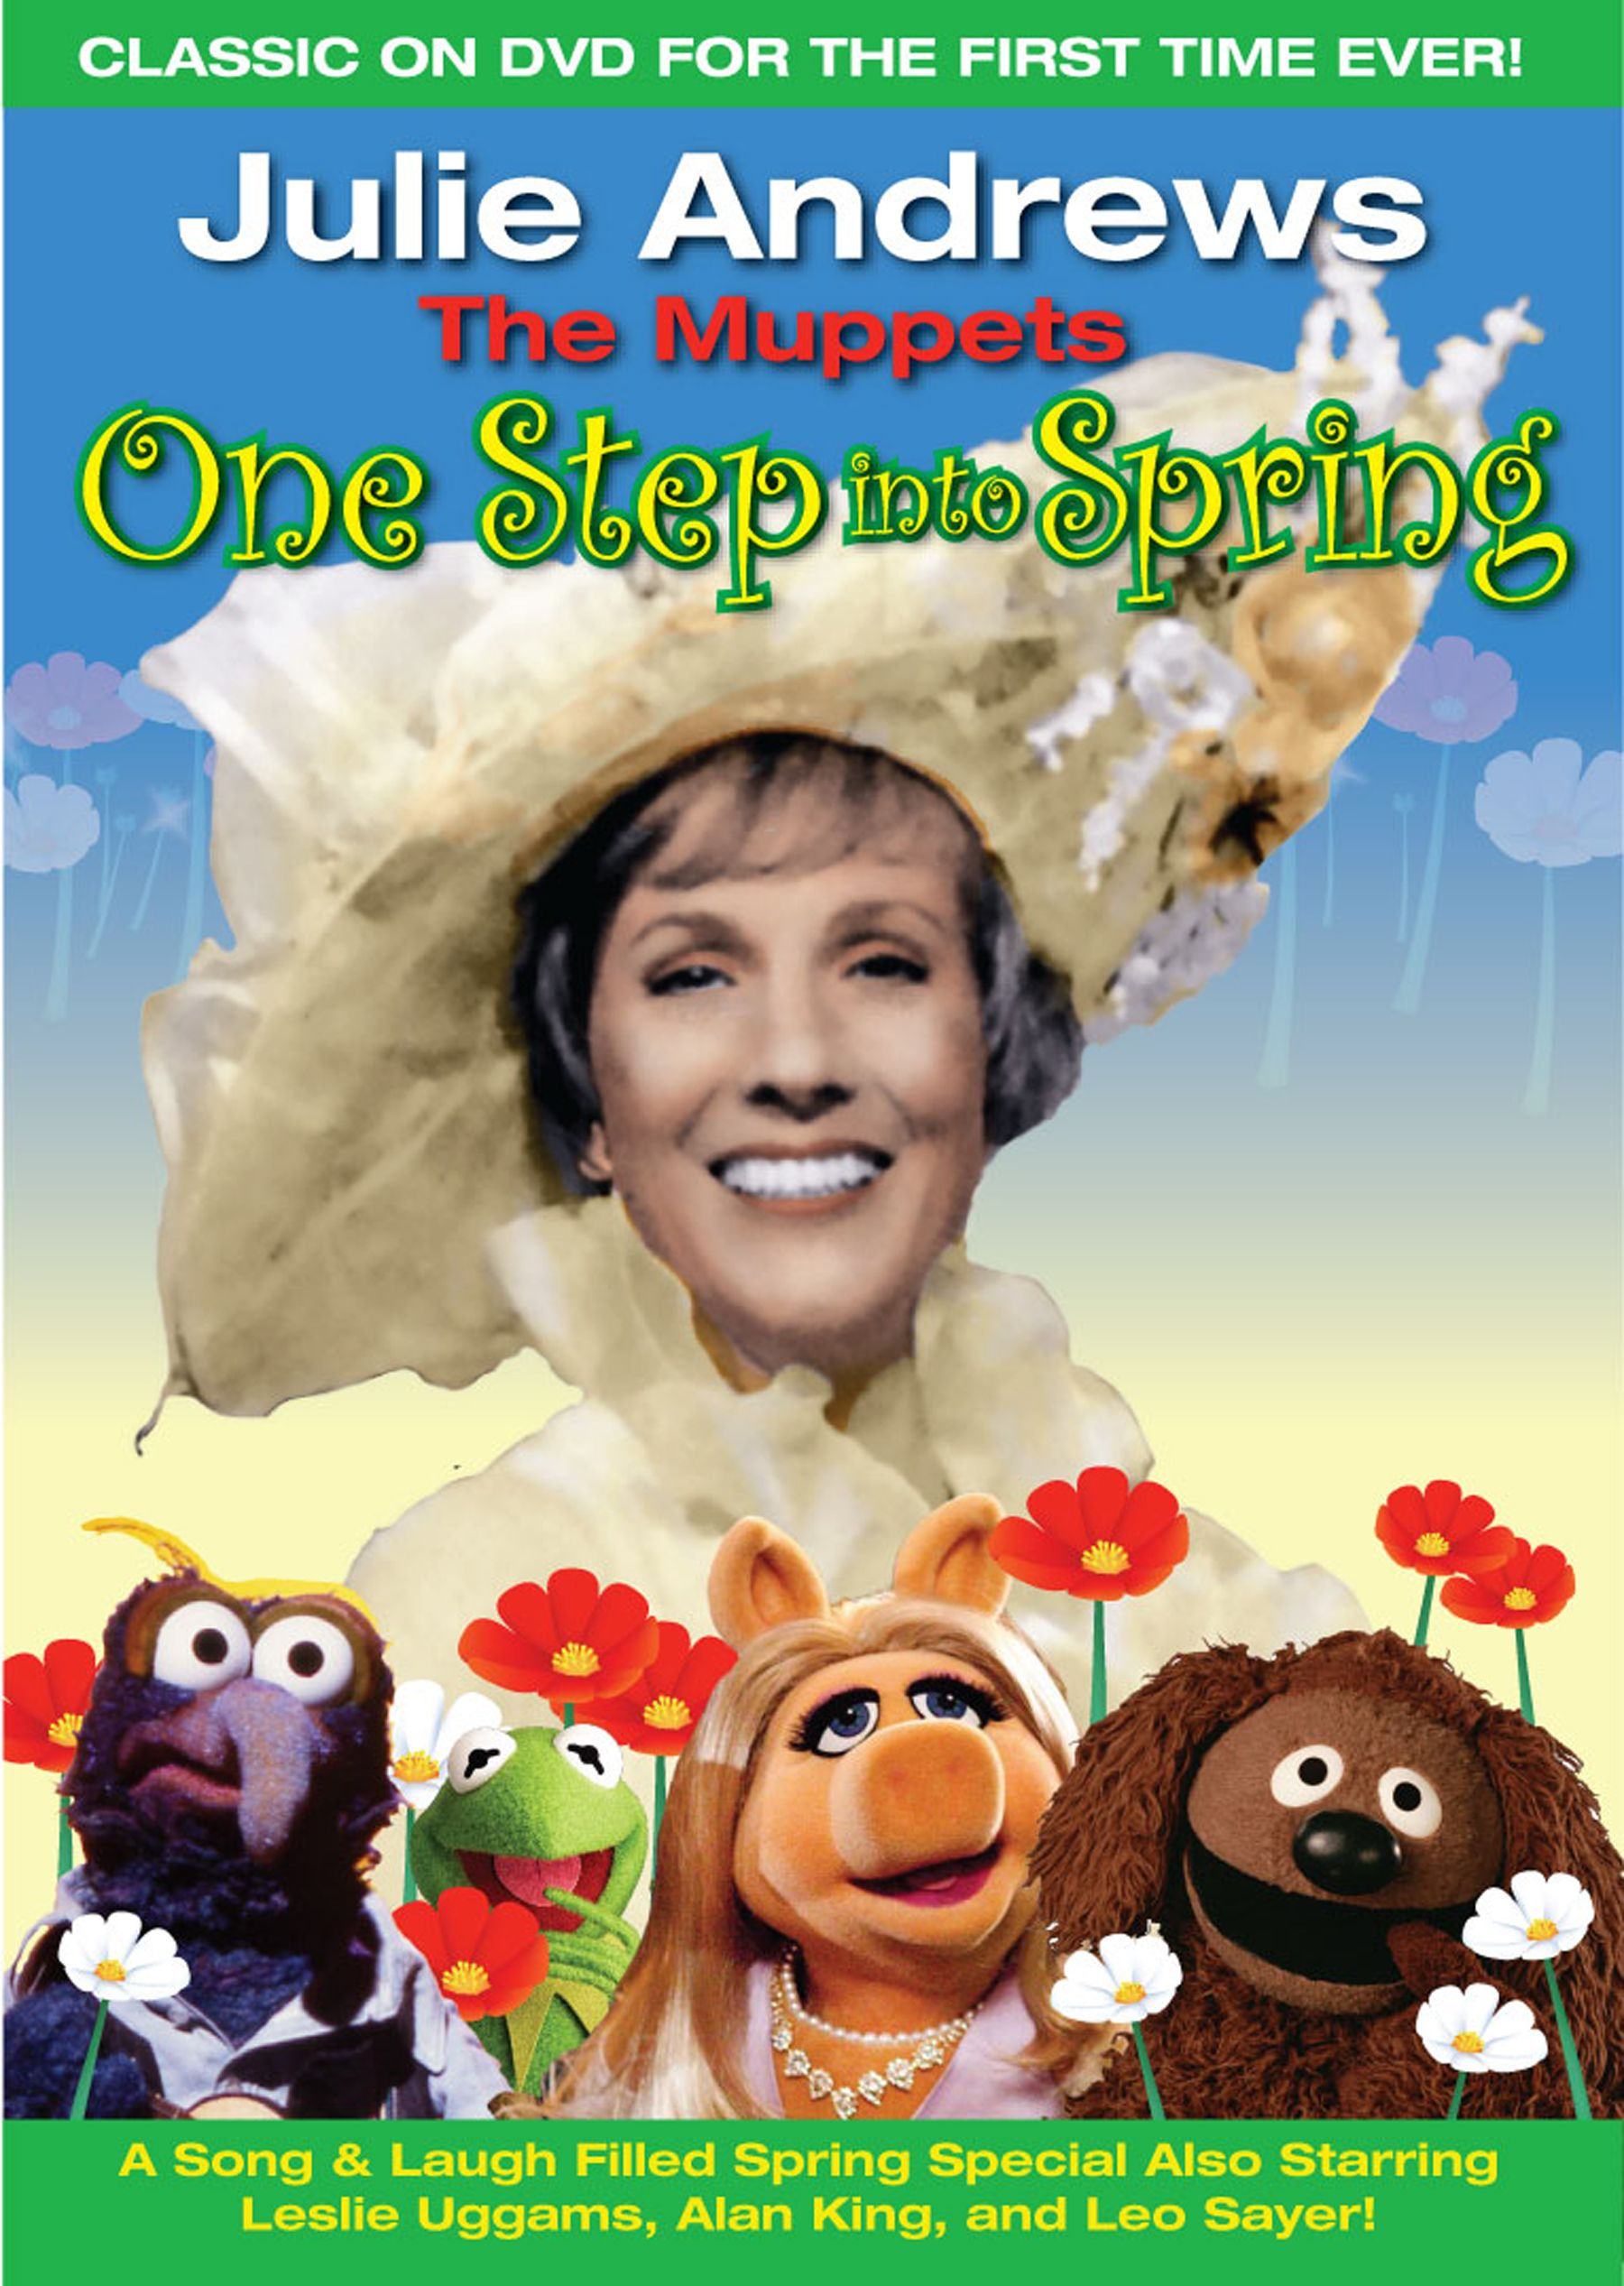 Julie Andrews and The Muppets: One Step into Spring